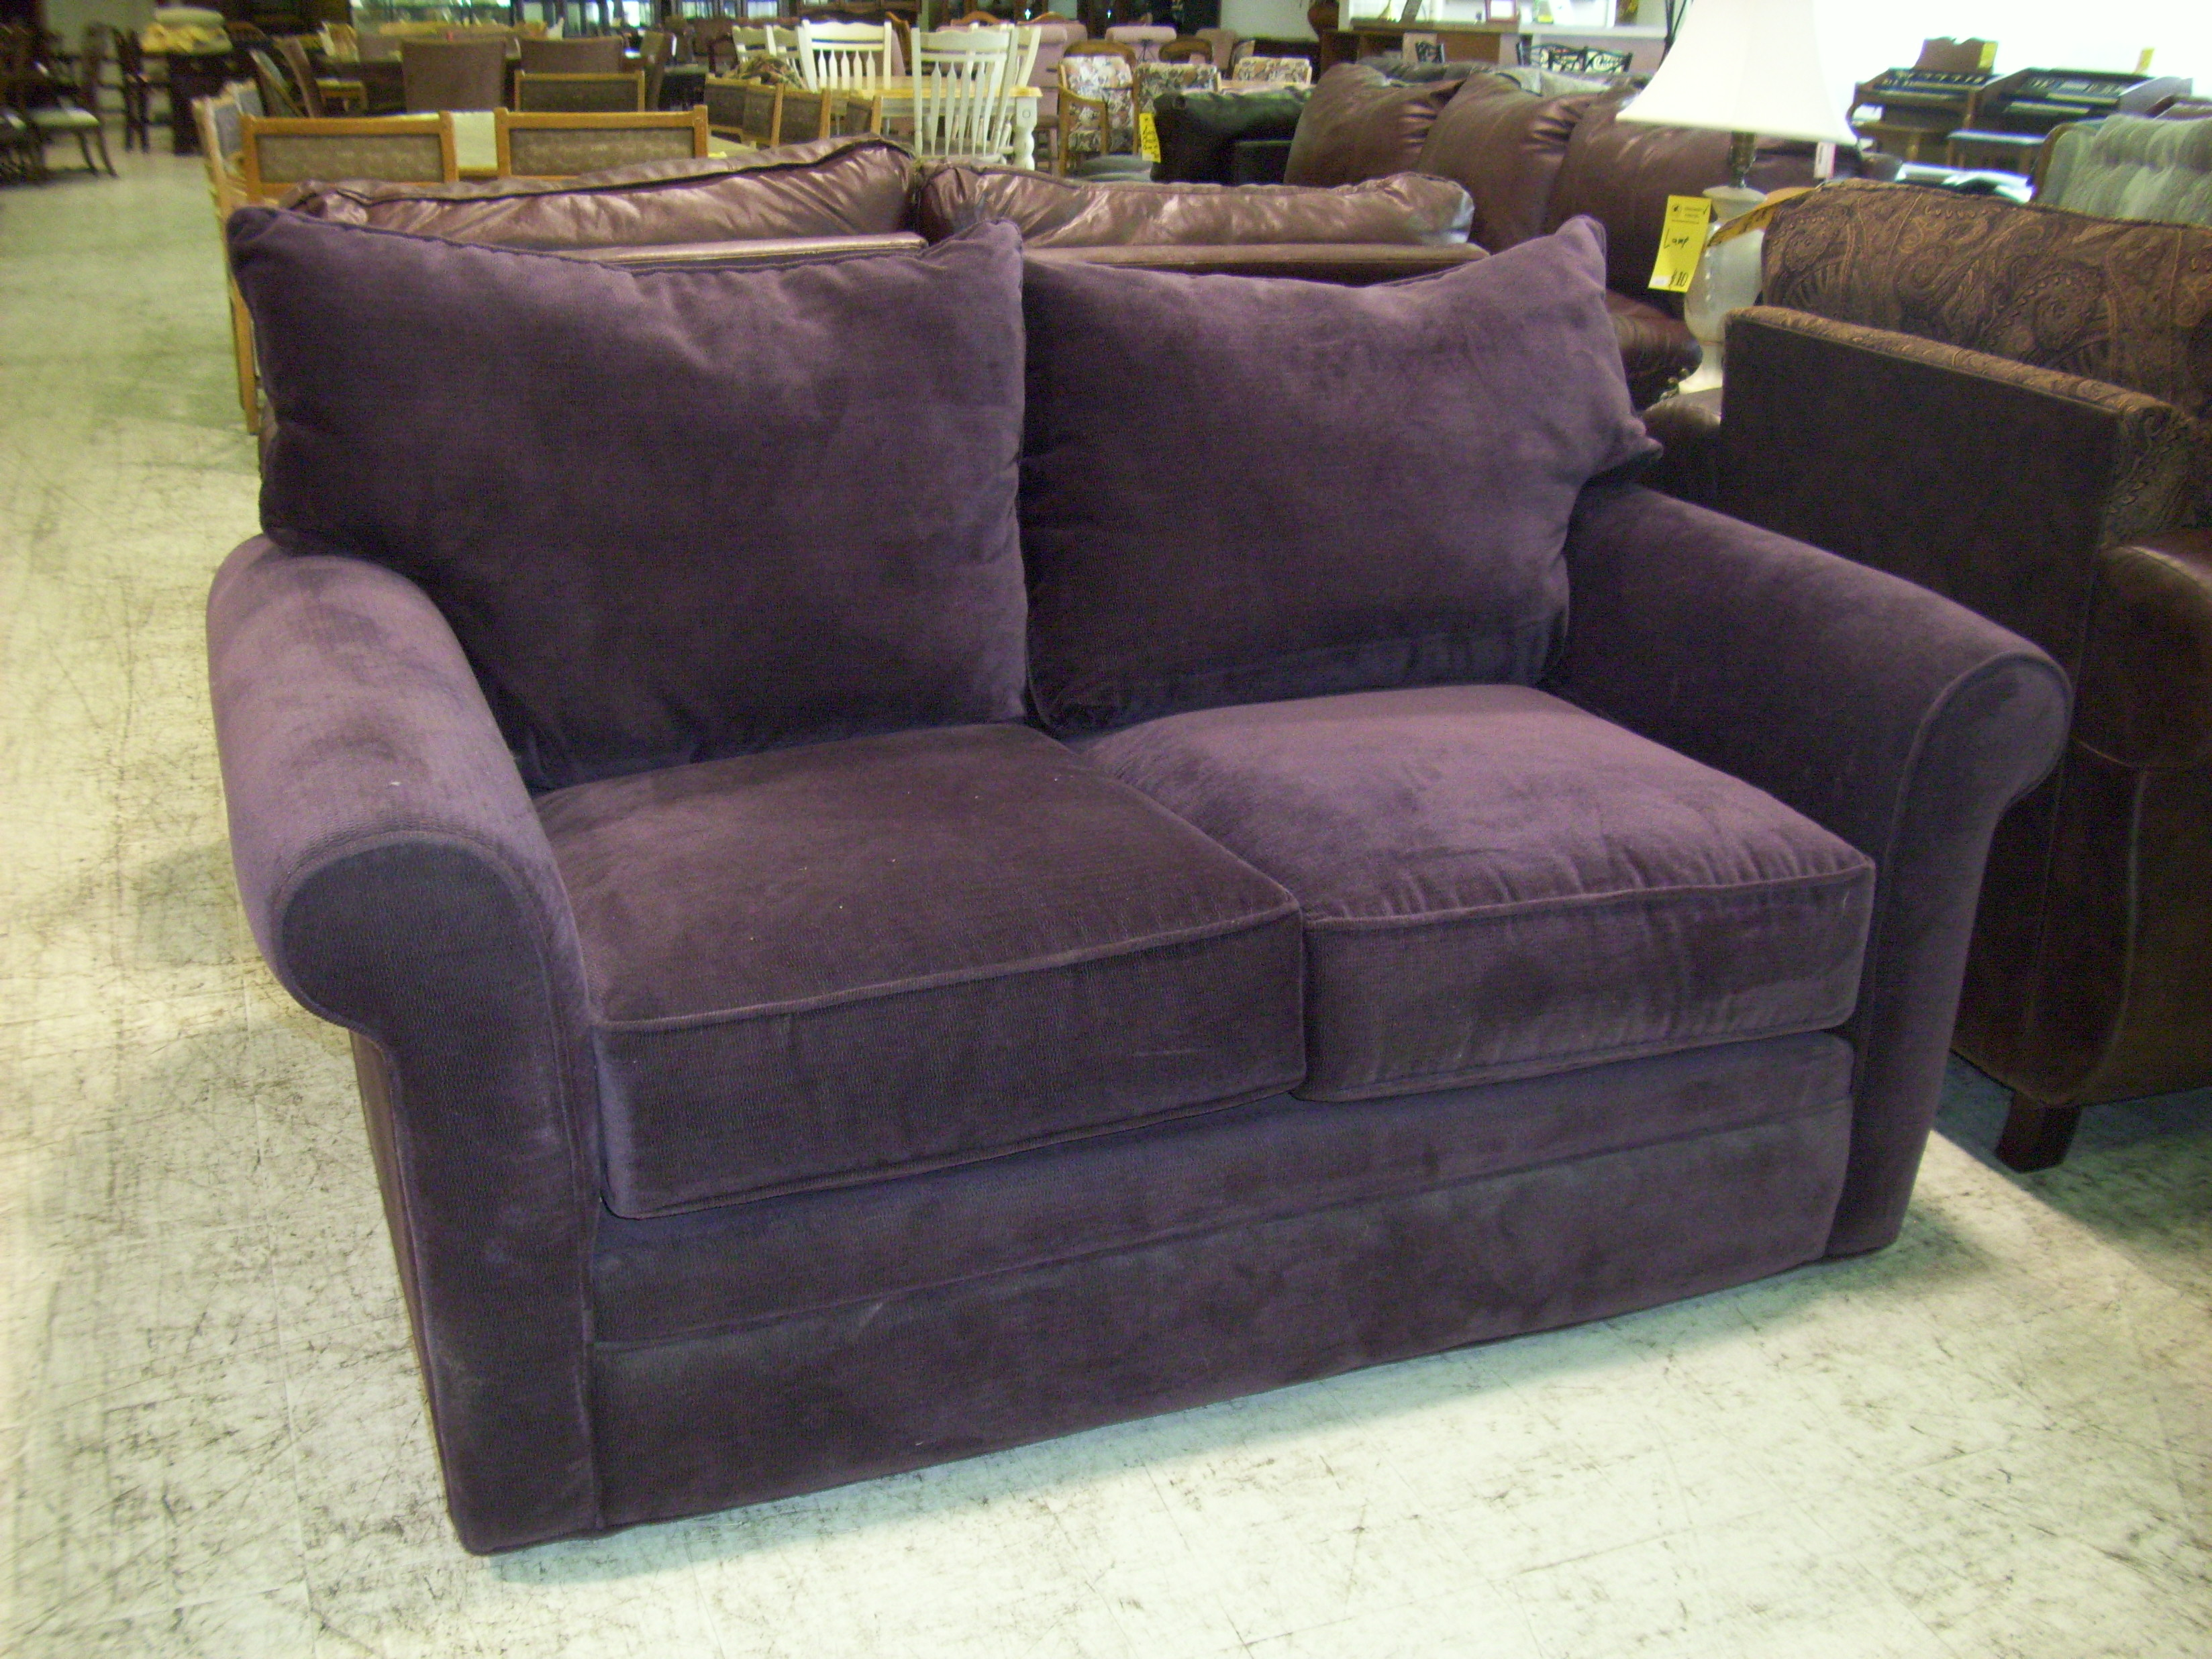 Purple Sofa Decorating Ideas | Plum Colored Sofa | Purple Sofa